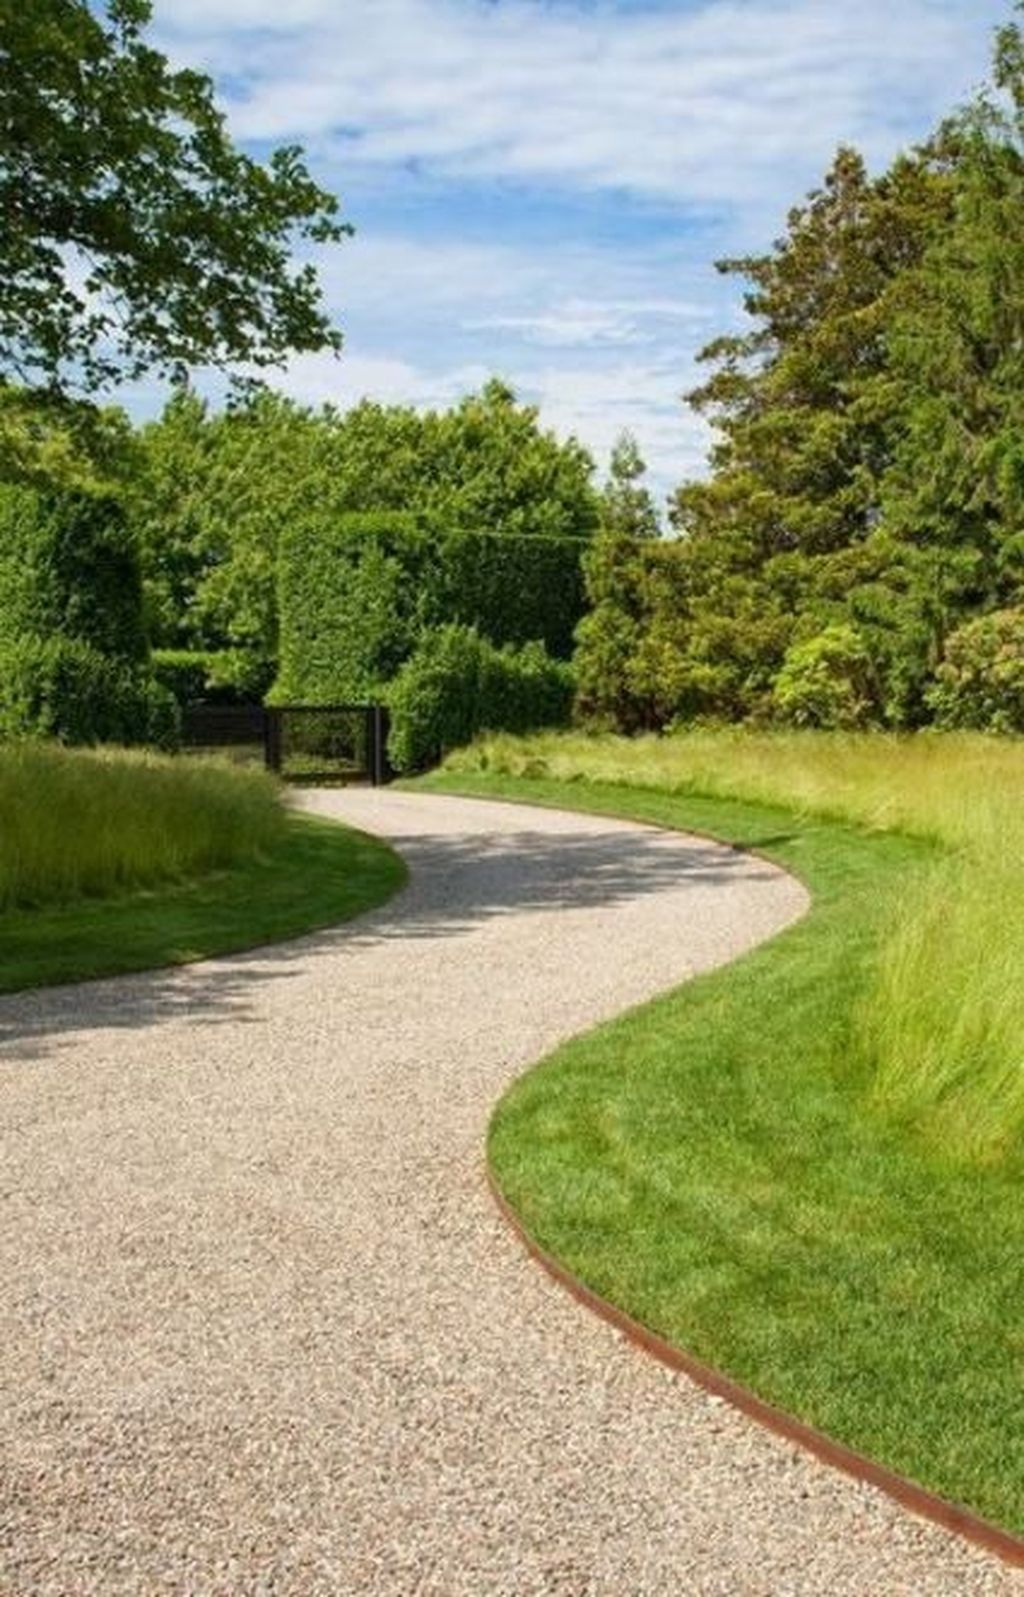 35 Fabulous Driveway Landscaping Design Ideas For Your Home To Try Asap